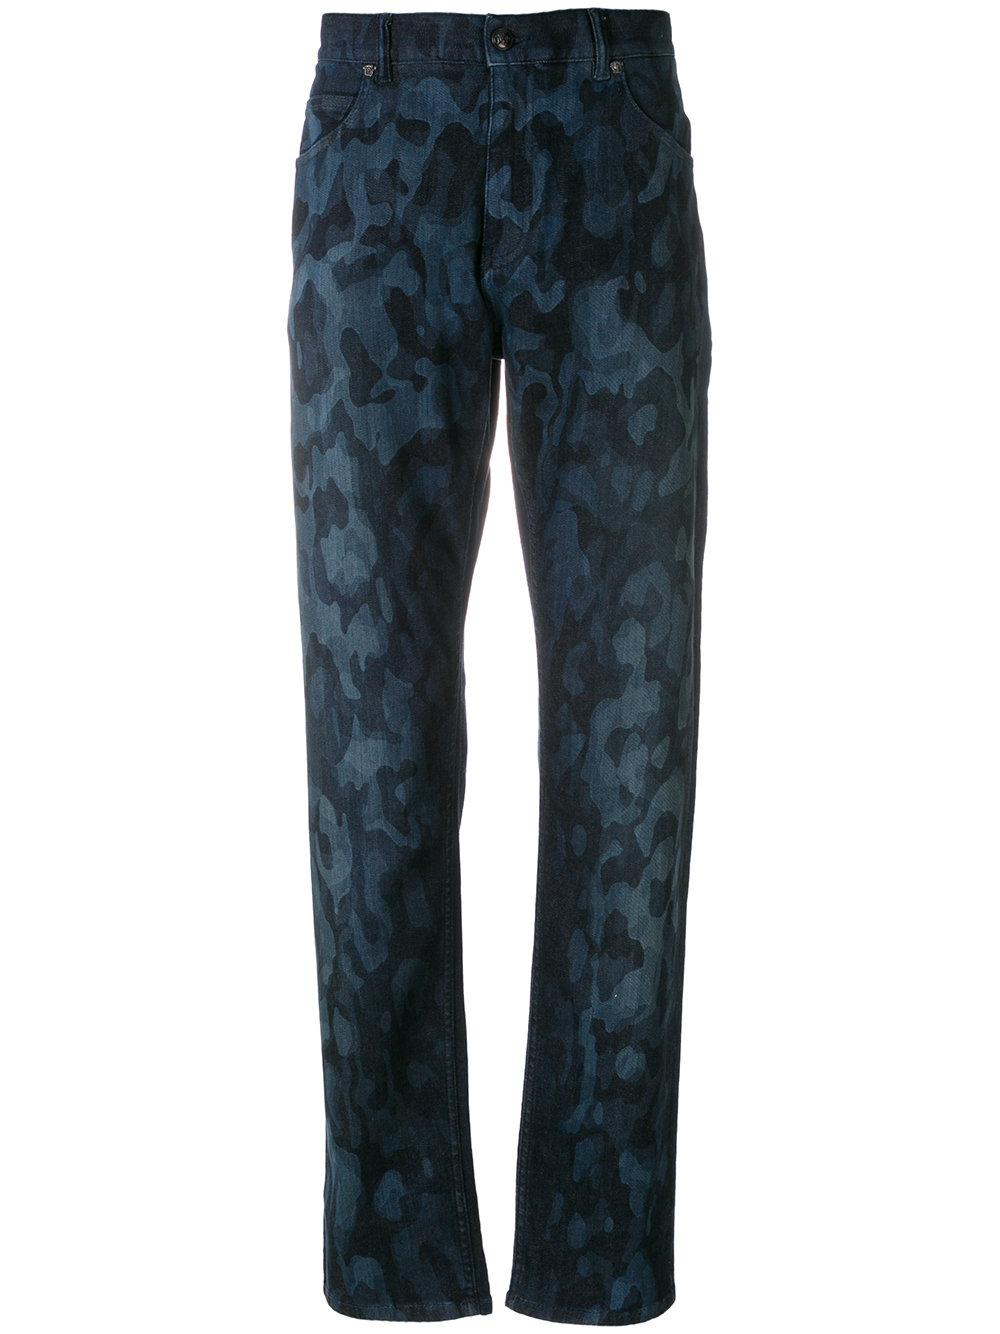 Versace Camouflage Print Jeans